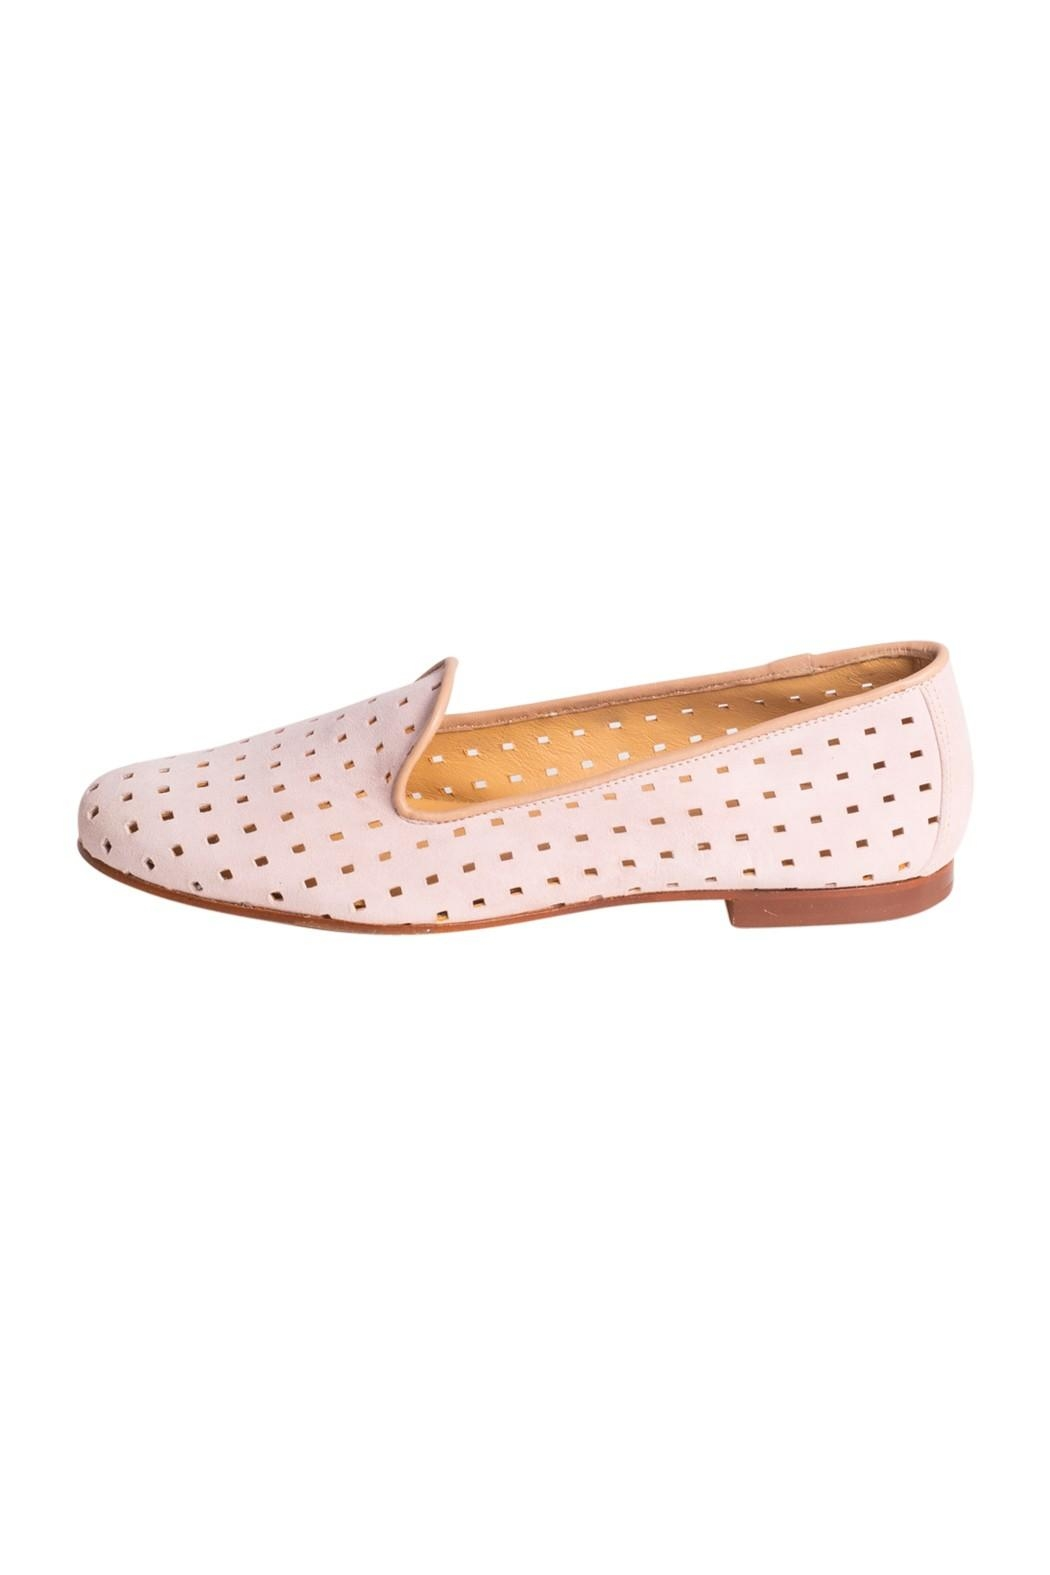 Pascucci Suede Perforated Loafers - Main Image